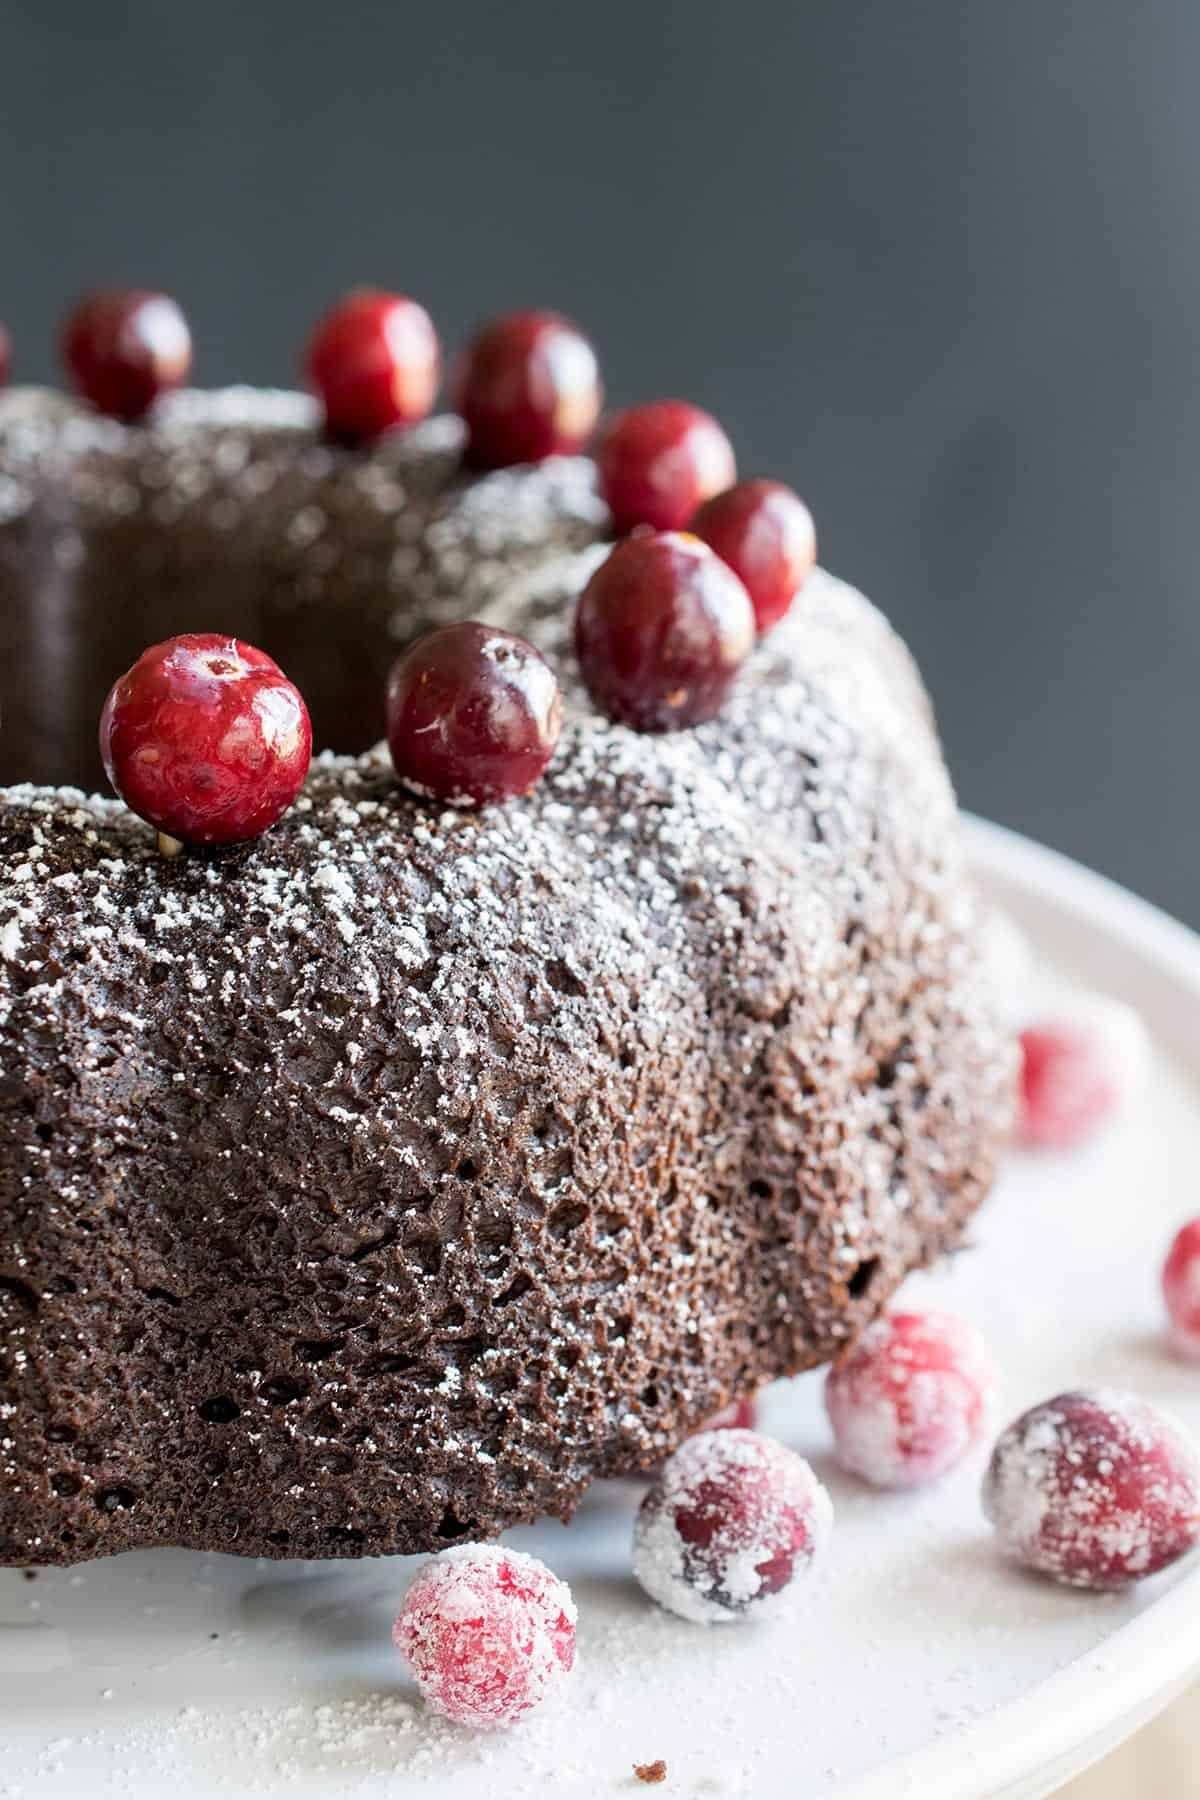 Chocolate Almond Cake Recipe - this moist chocolate cake is so divine! This bundt cake is so rich and delicious!